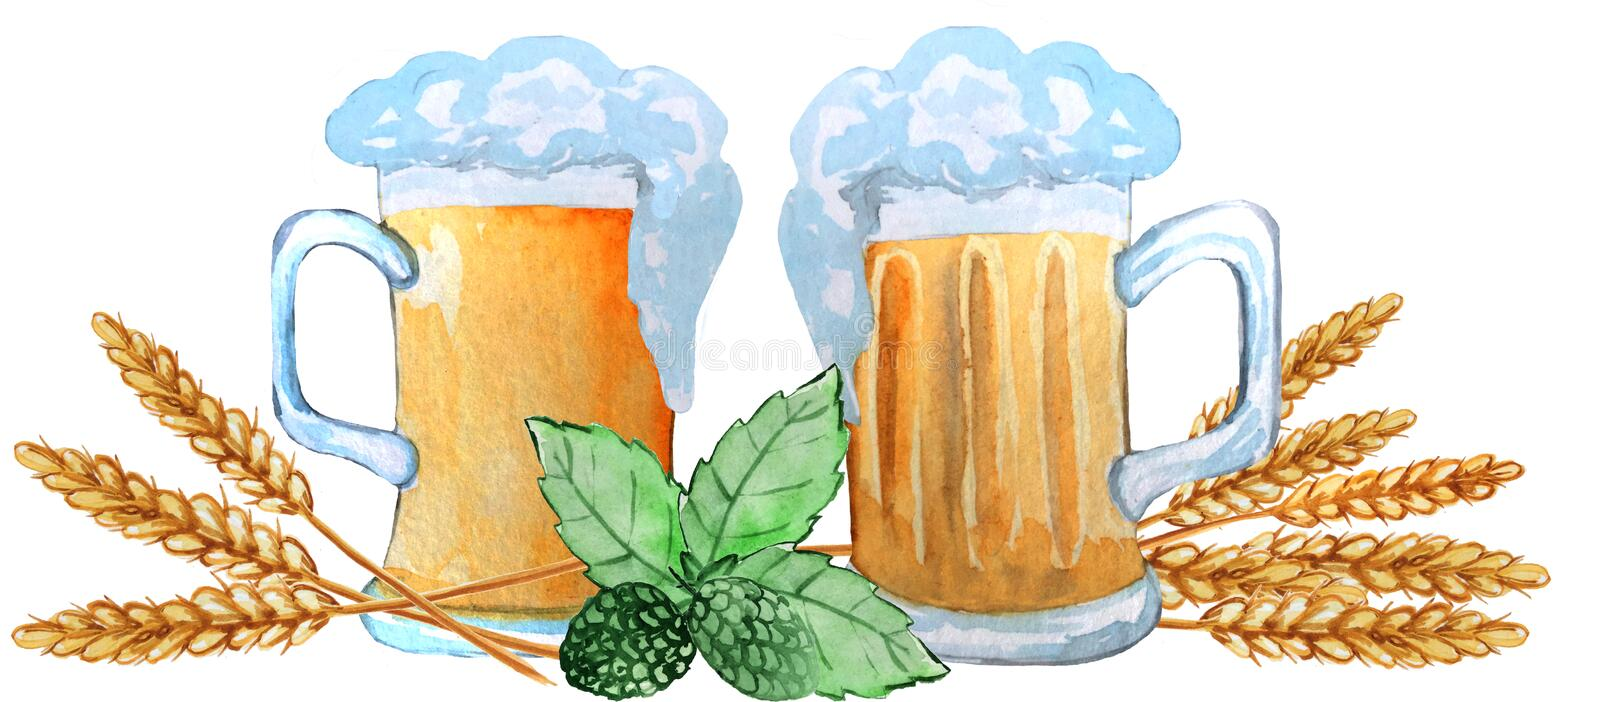 Two mugs of beer with ears of wheat, hop leaves on a white background. watercolor illustration for posters, prints vector illustration